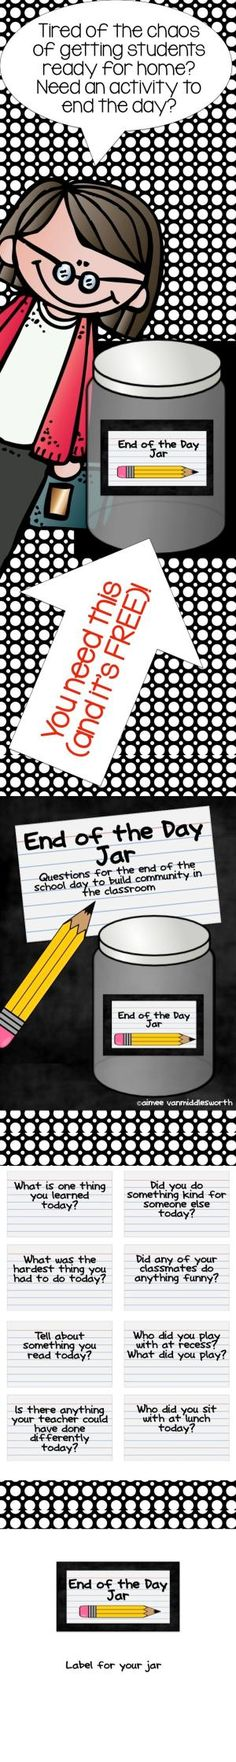 FREE!! The End of the Jar is a great way to end the school day and wonderful for classroom management! by rebecca2